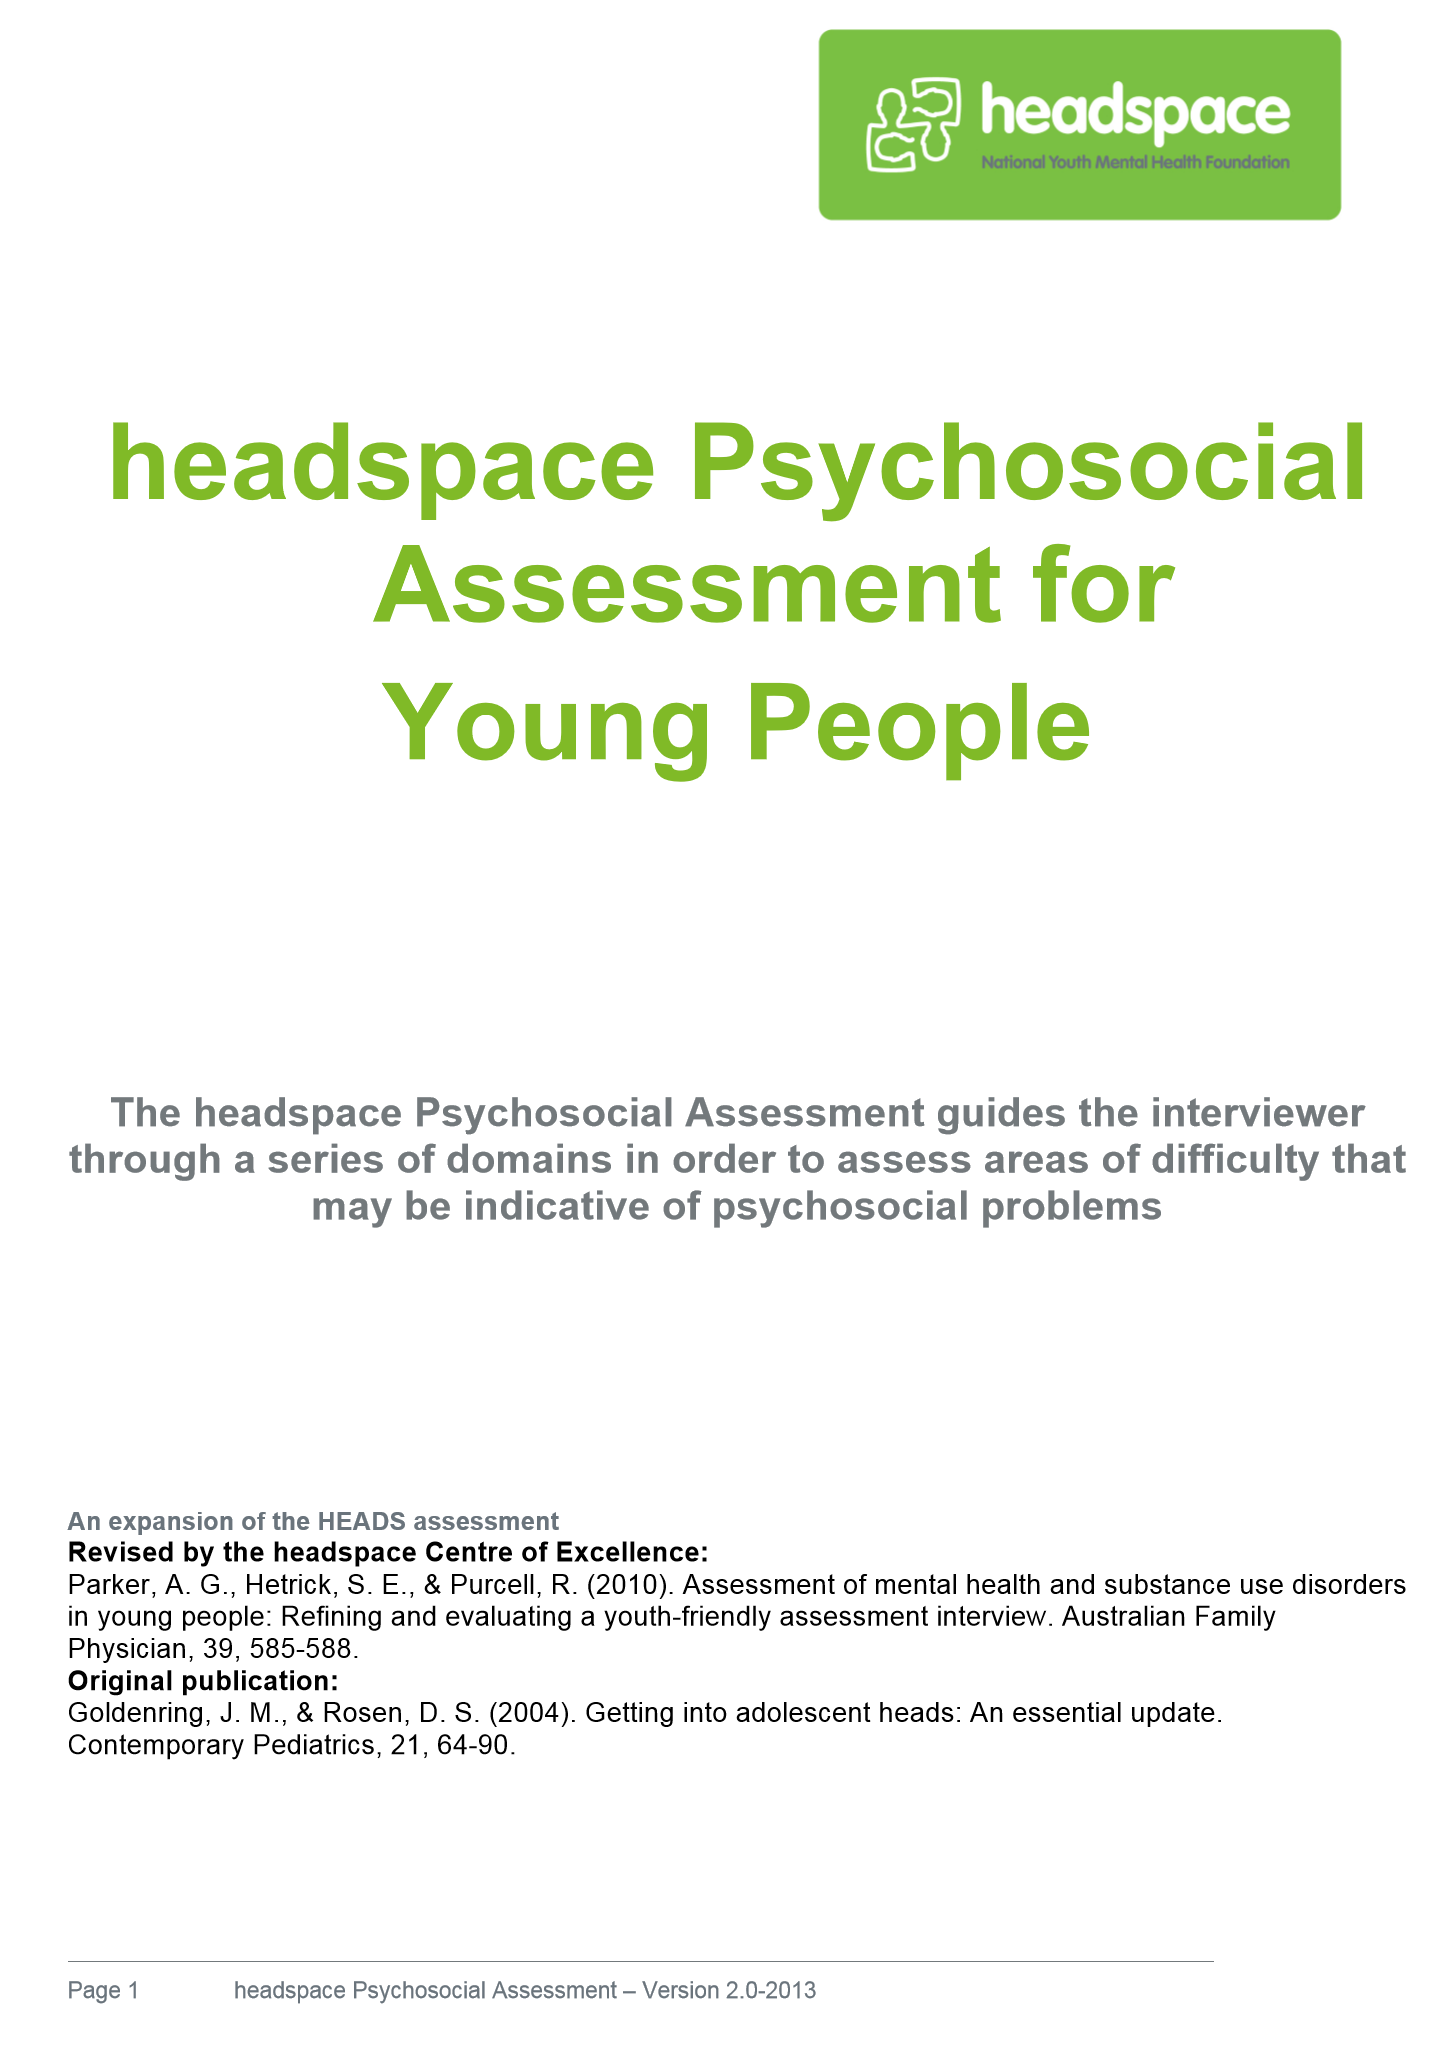 Headspace Headss Assessment Tool For Young People